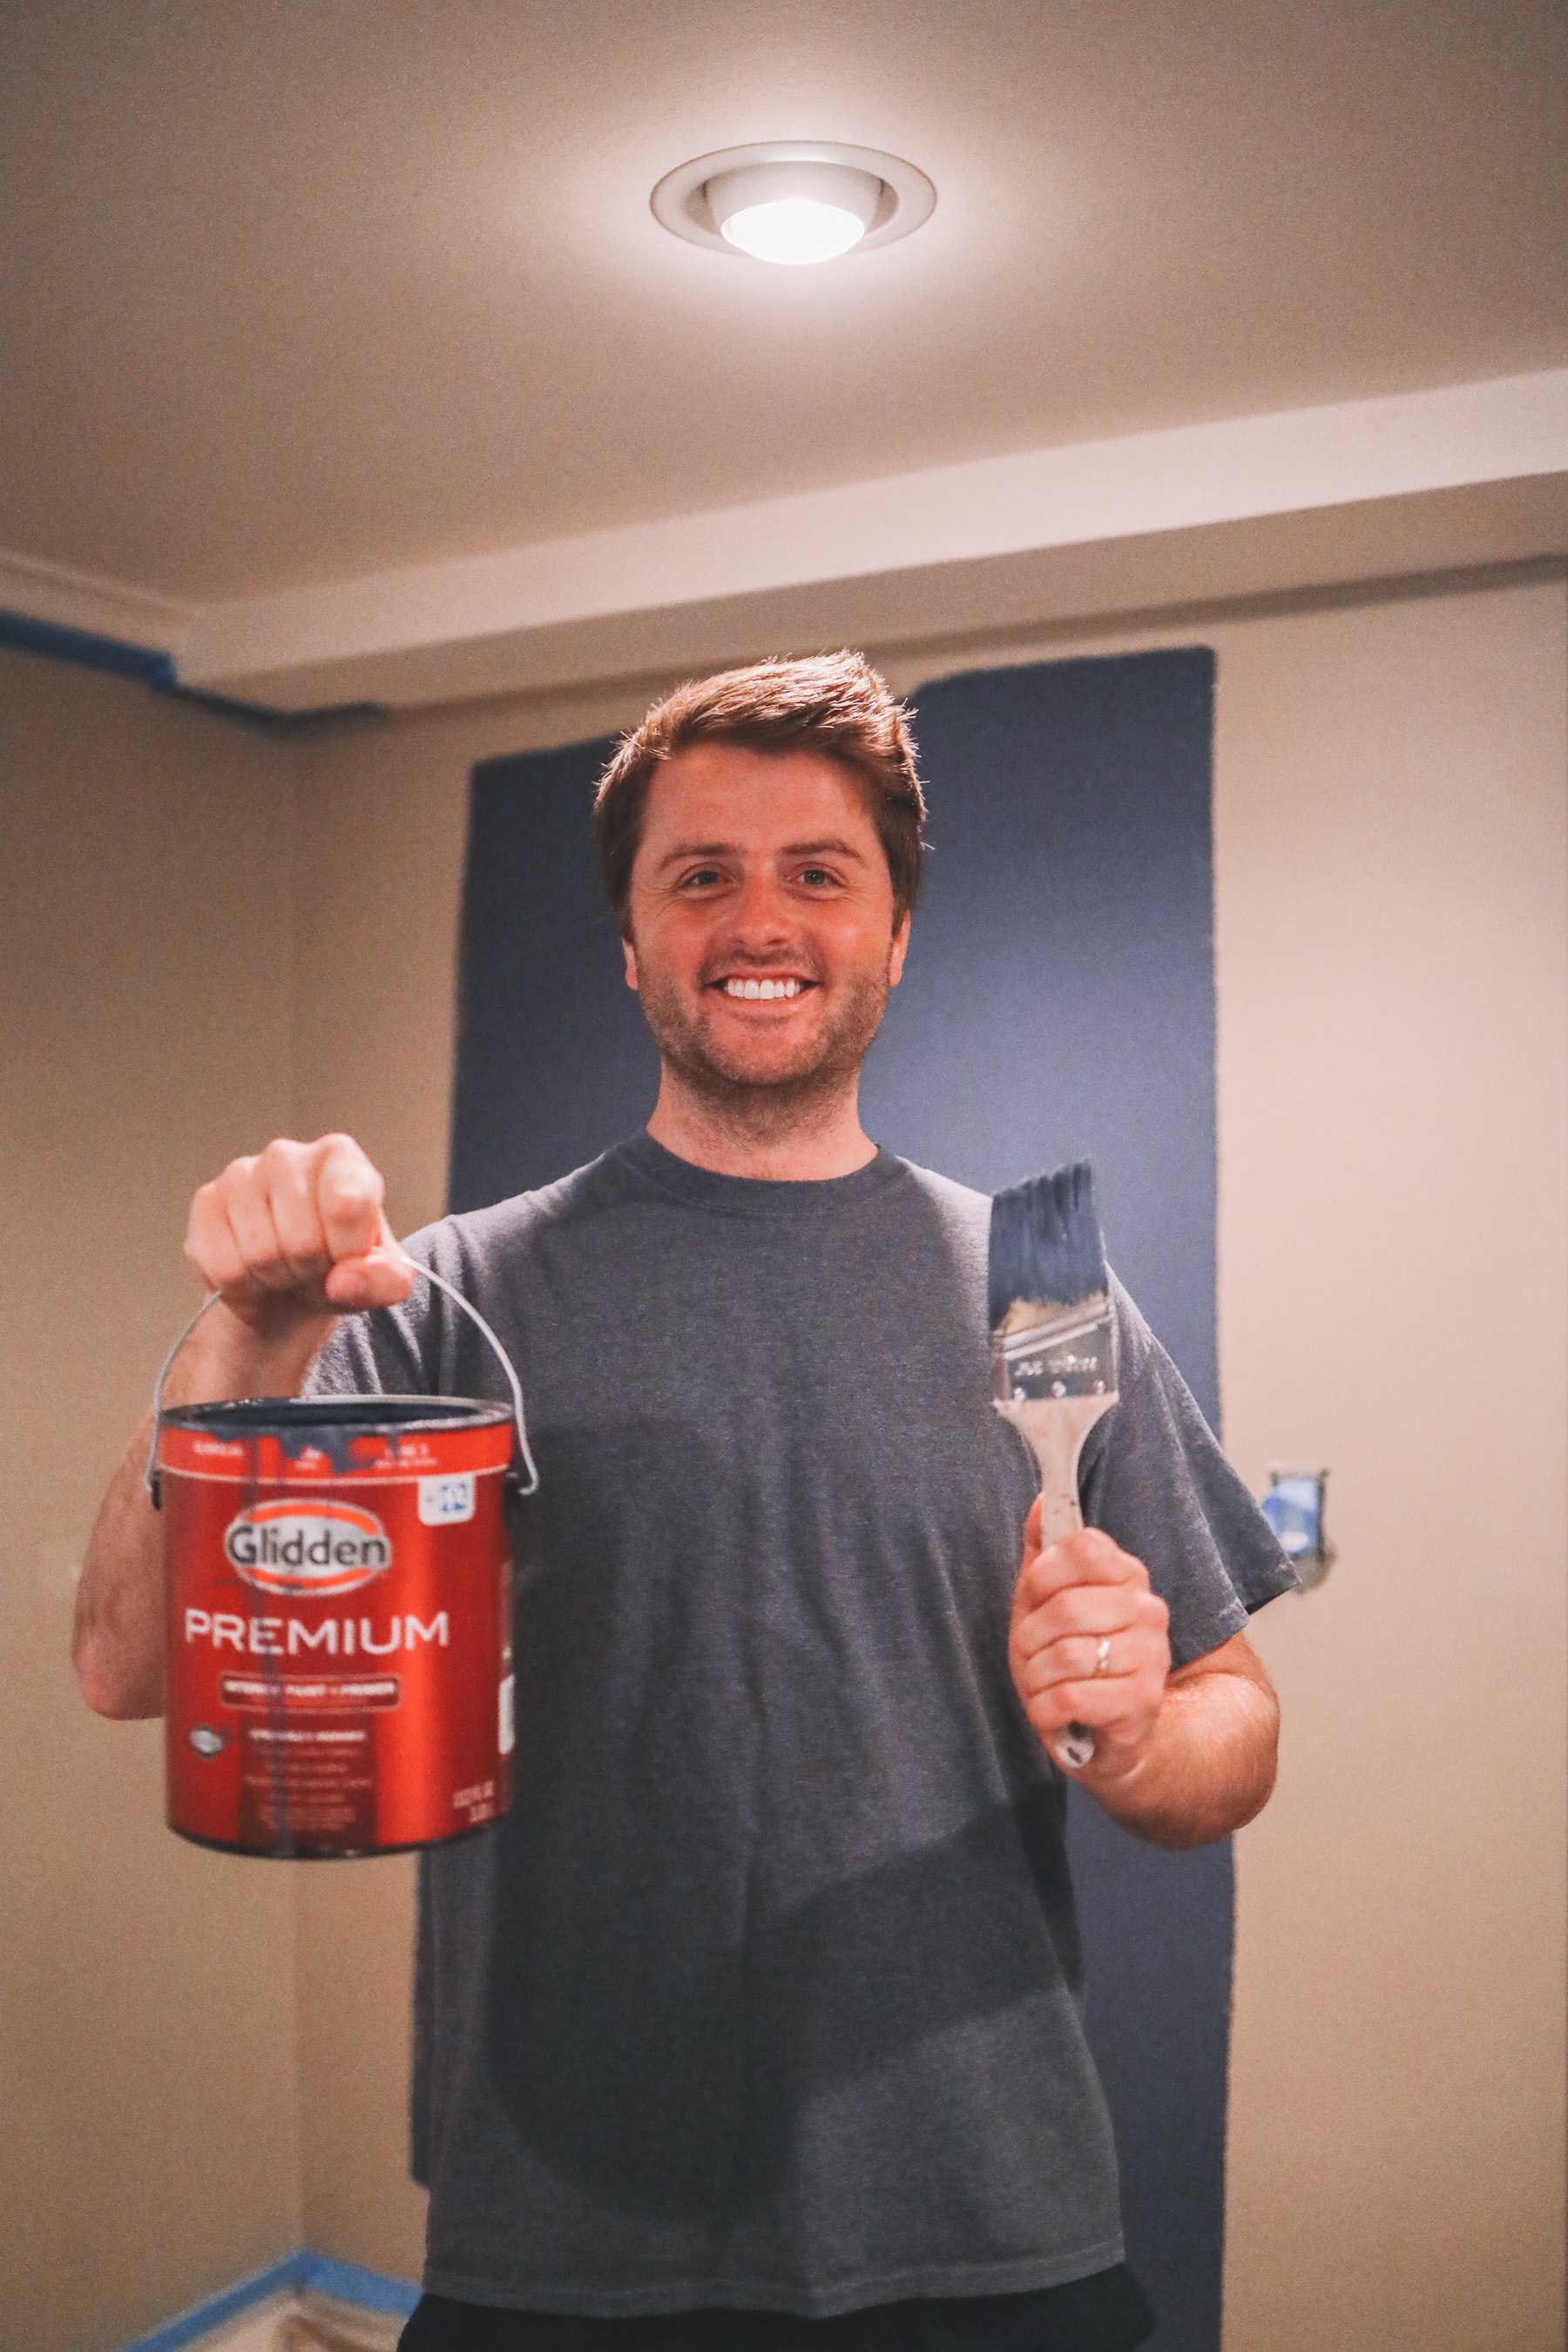 Mitch painting his office navy blue